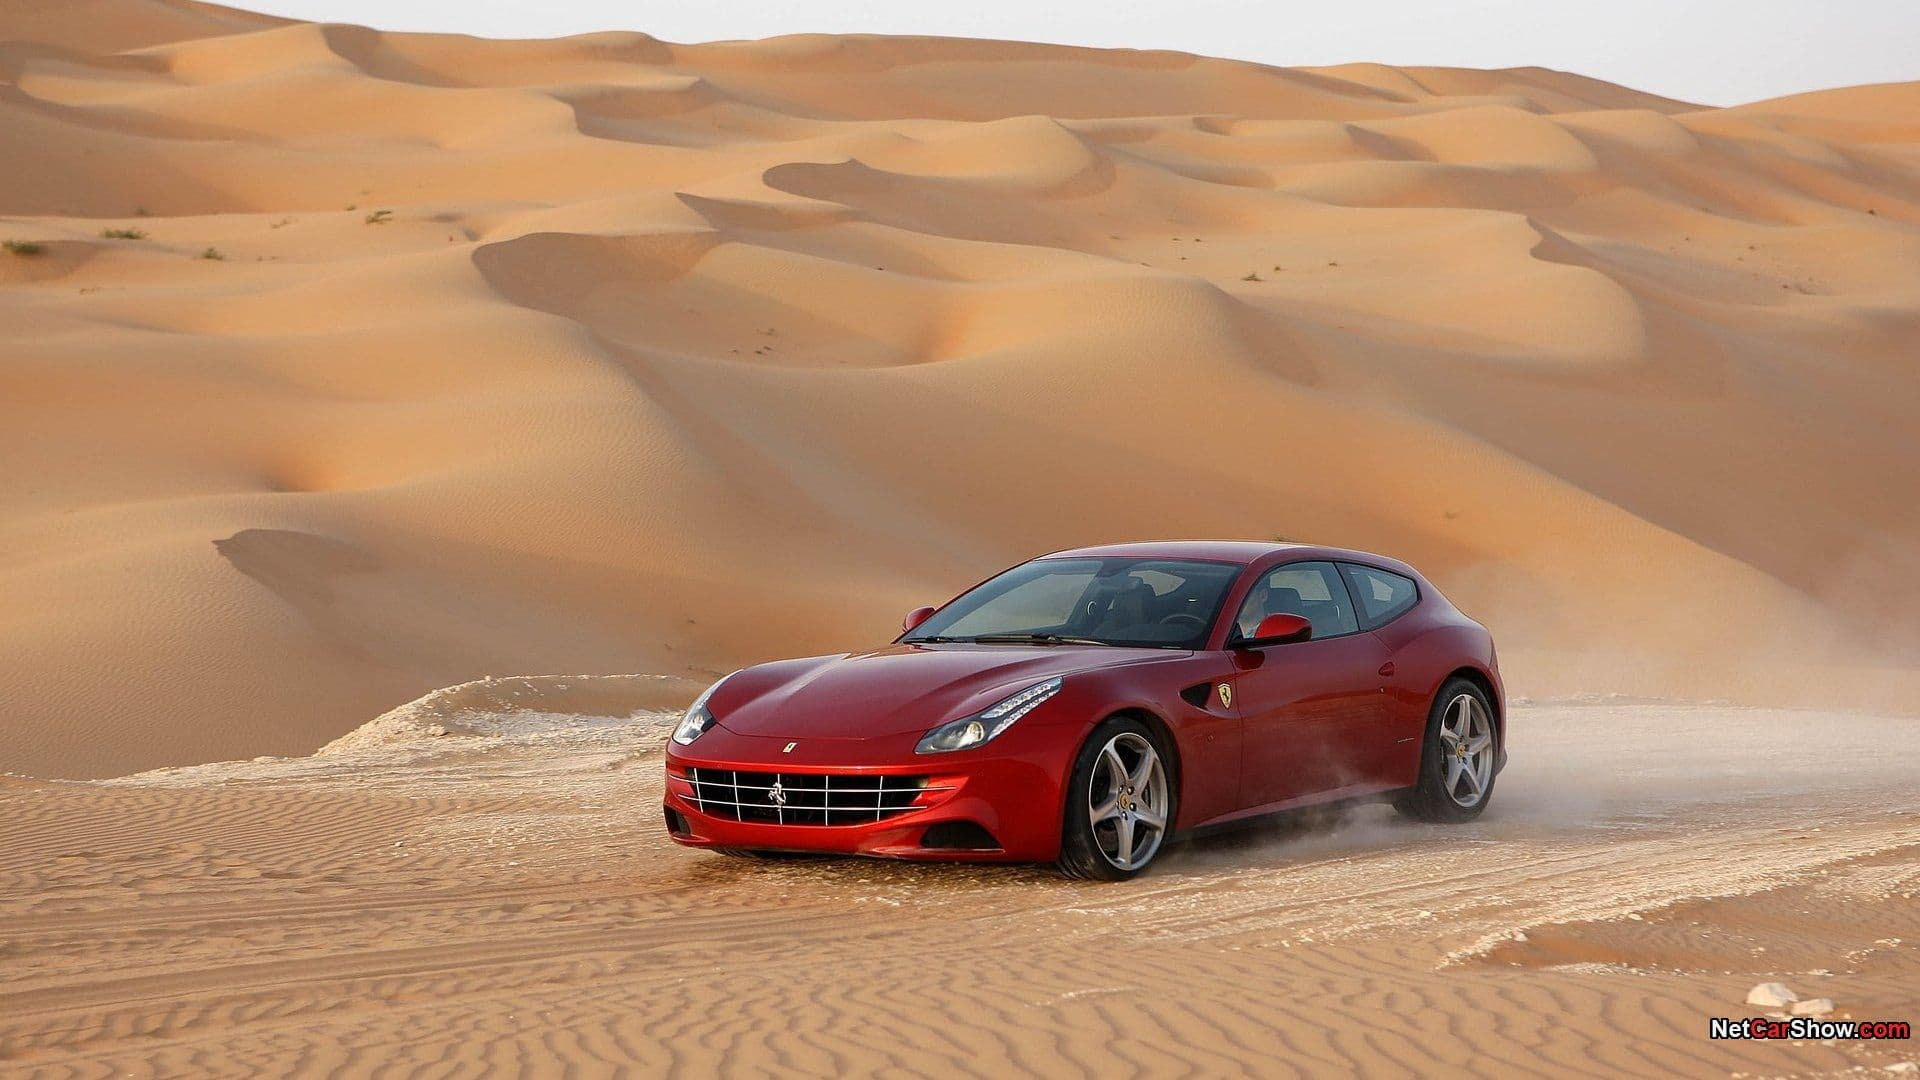 1920x1080 - Ferrari FF Wallpapers 19